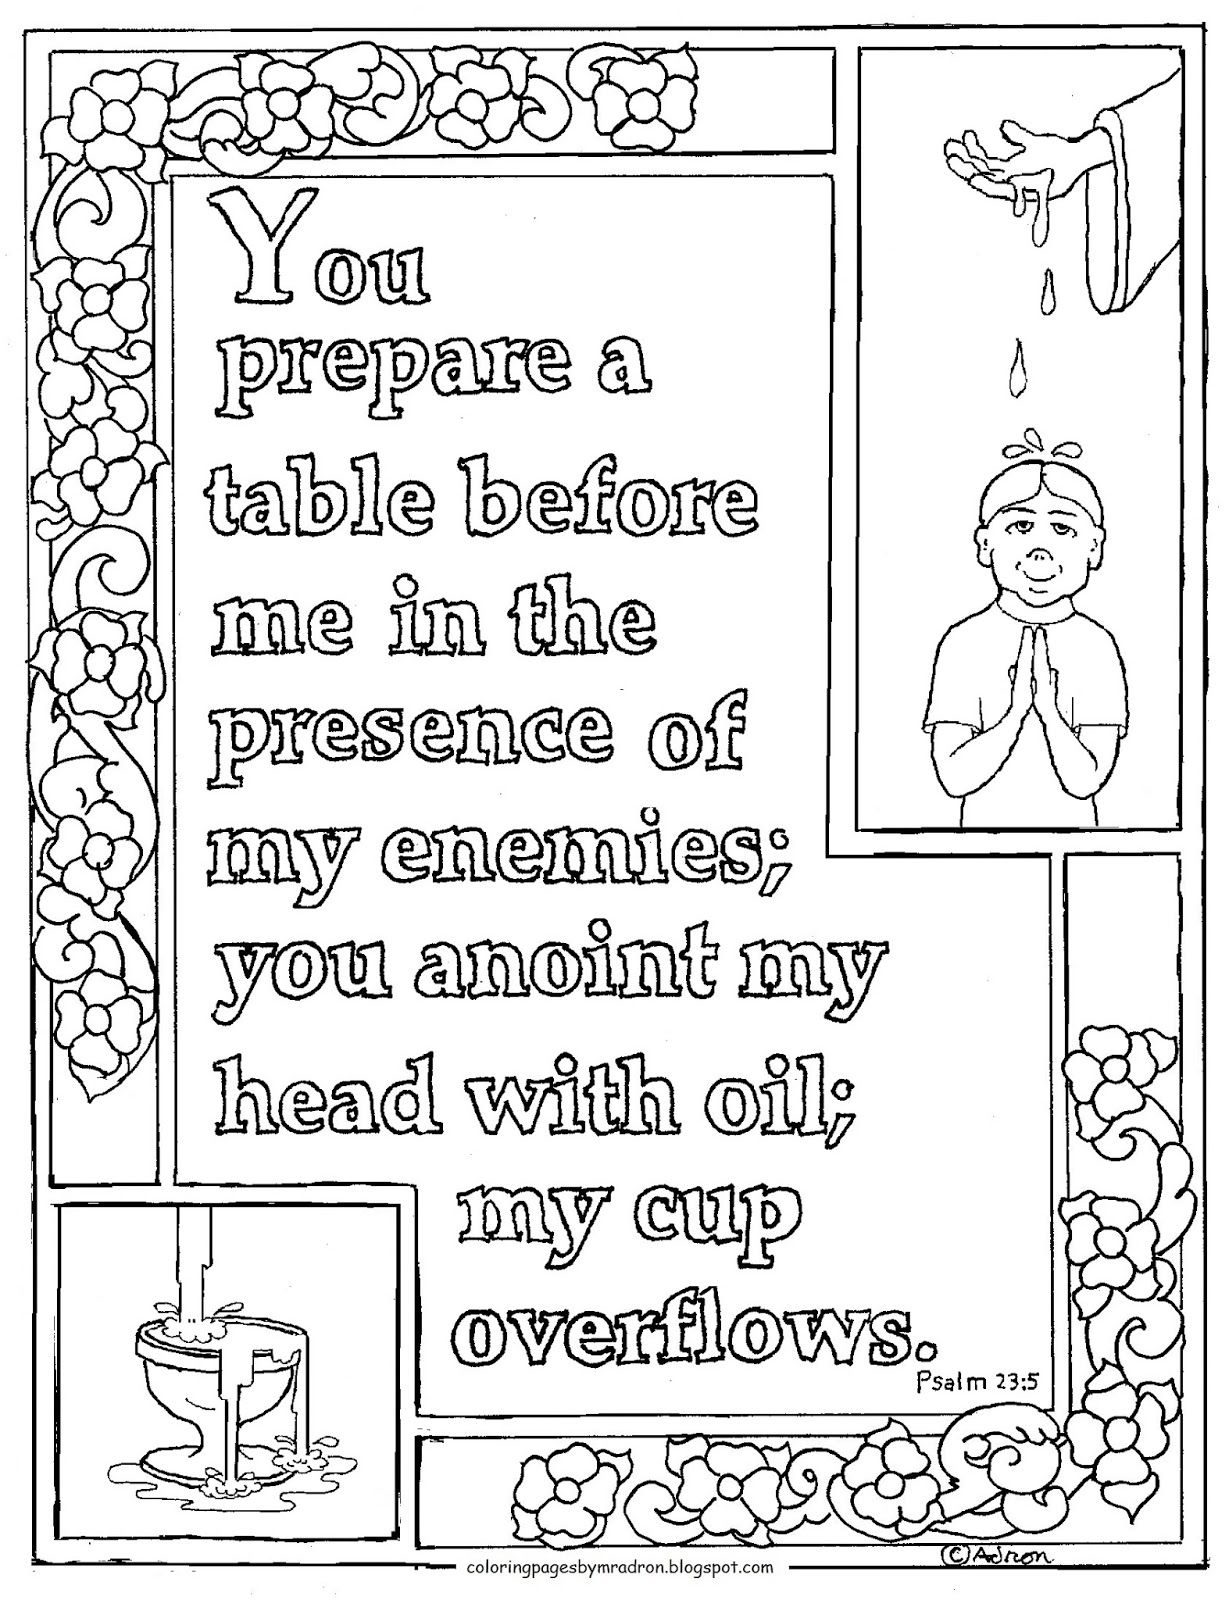 Printable Psalm 23 5 My Cup Overflows Coloring Page Bible